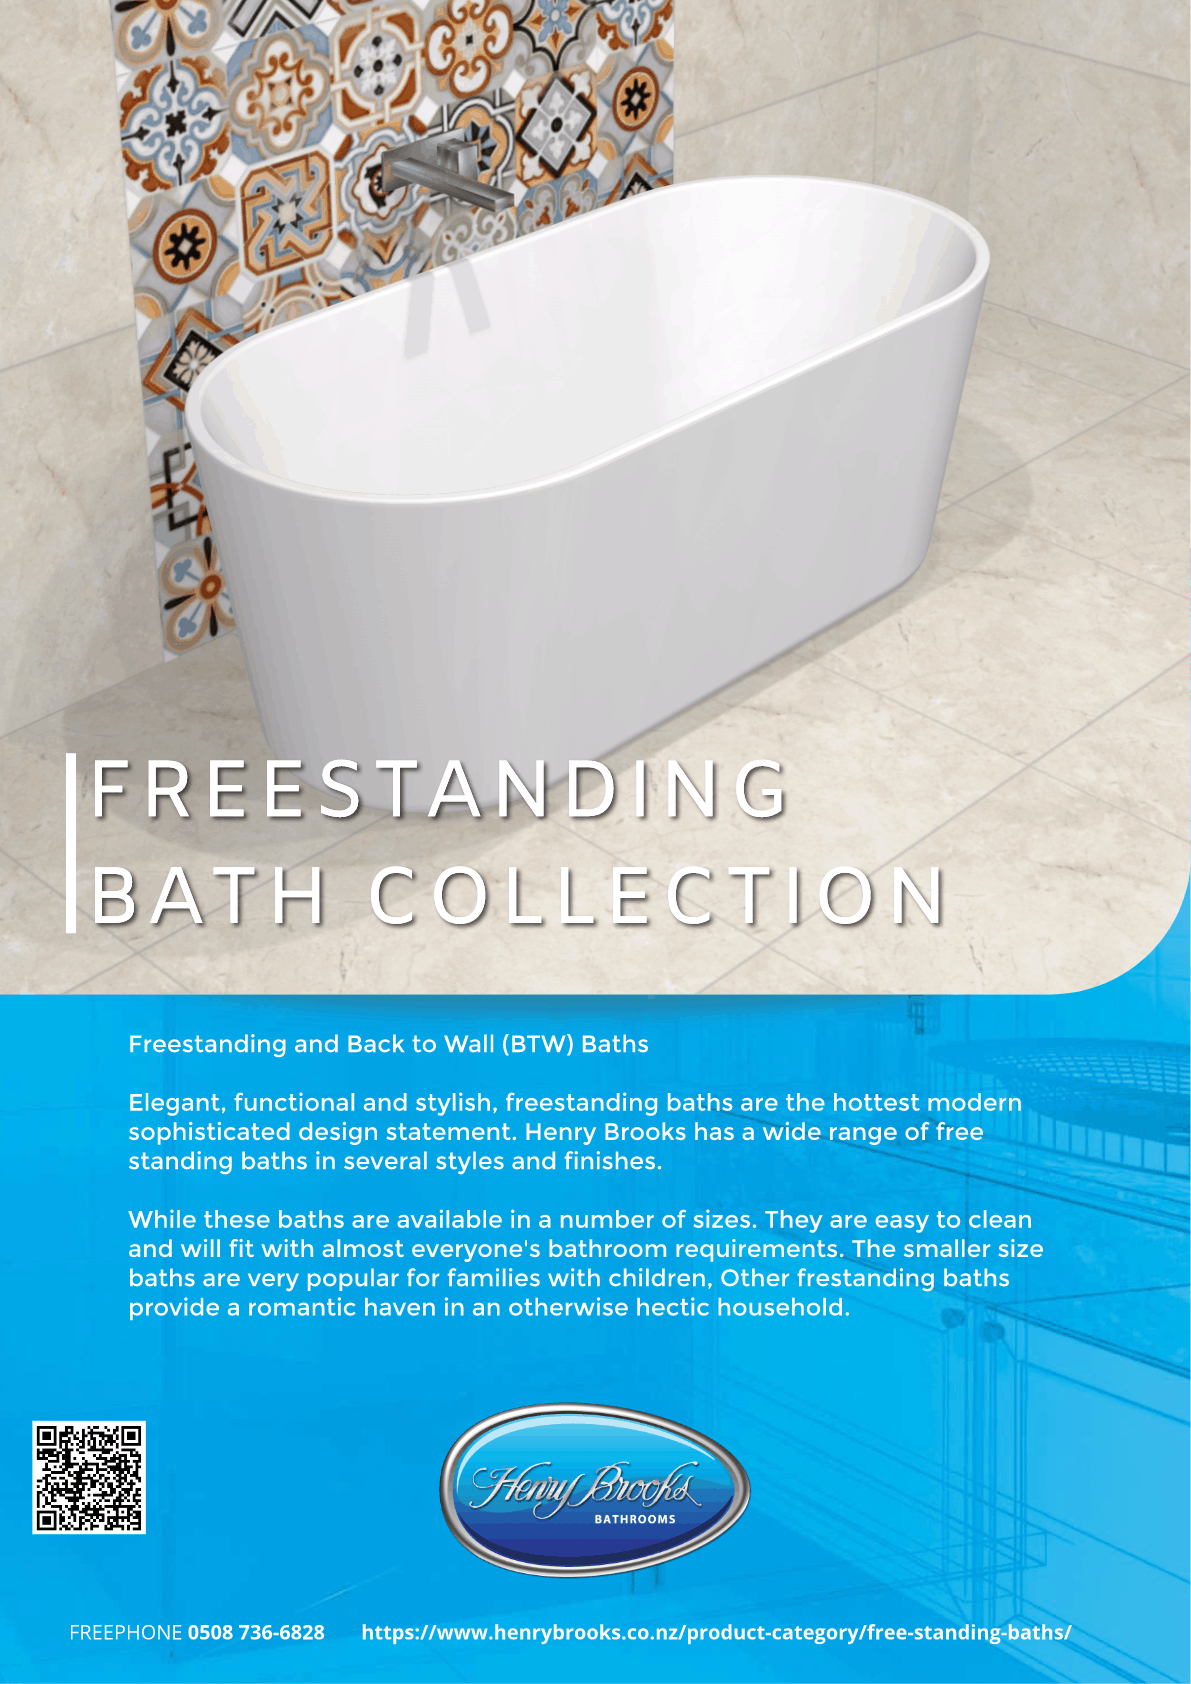 Freestanding bath front page 2020